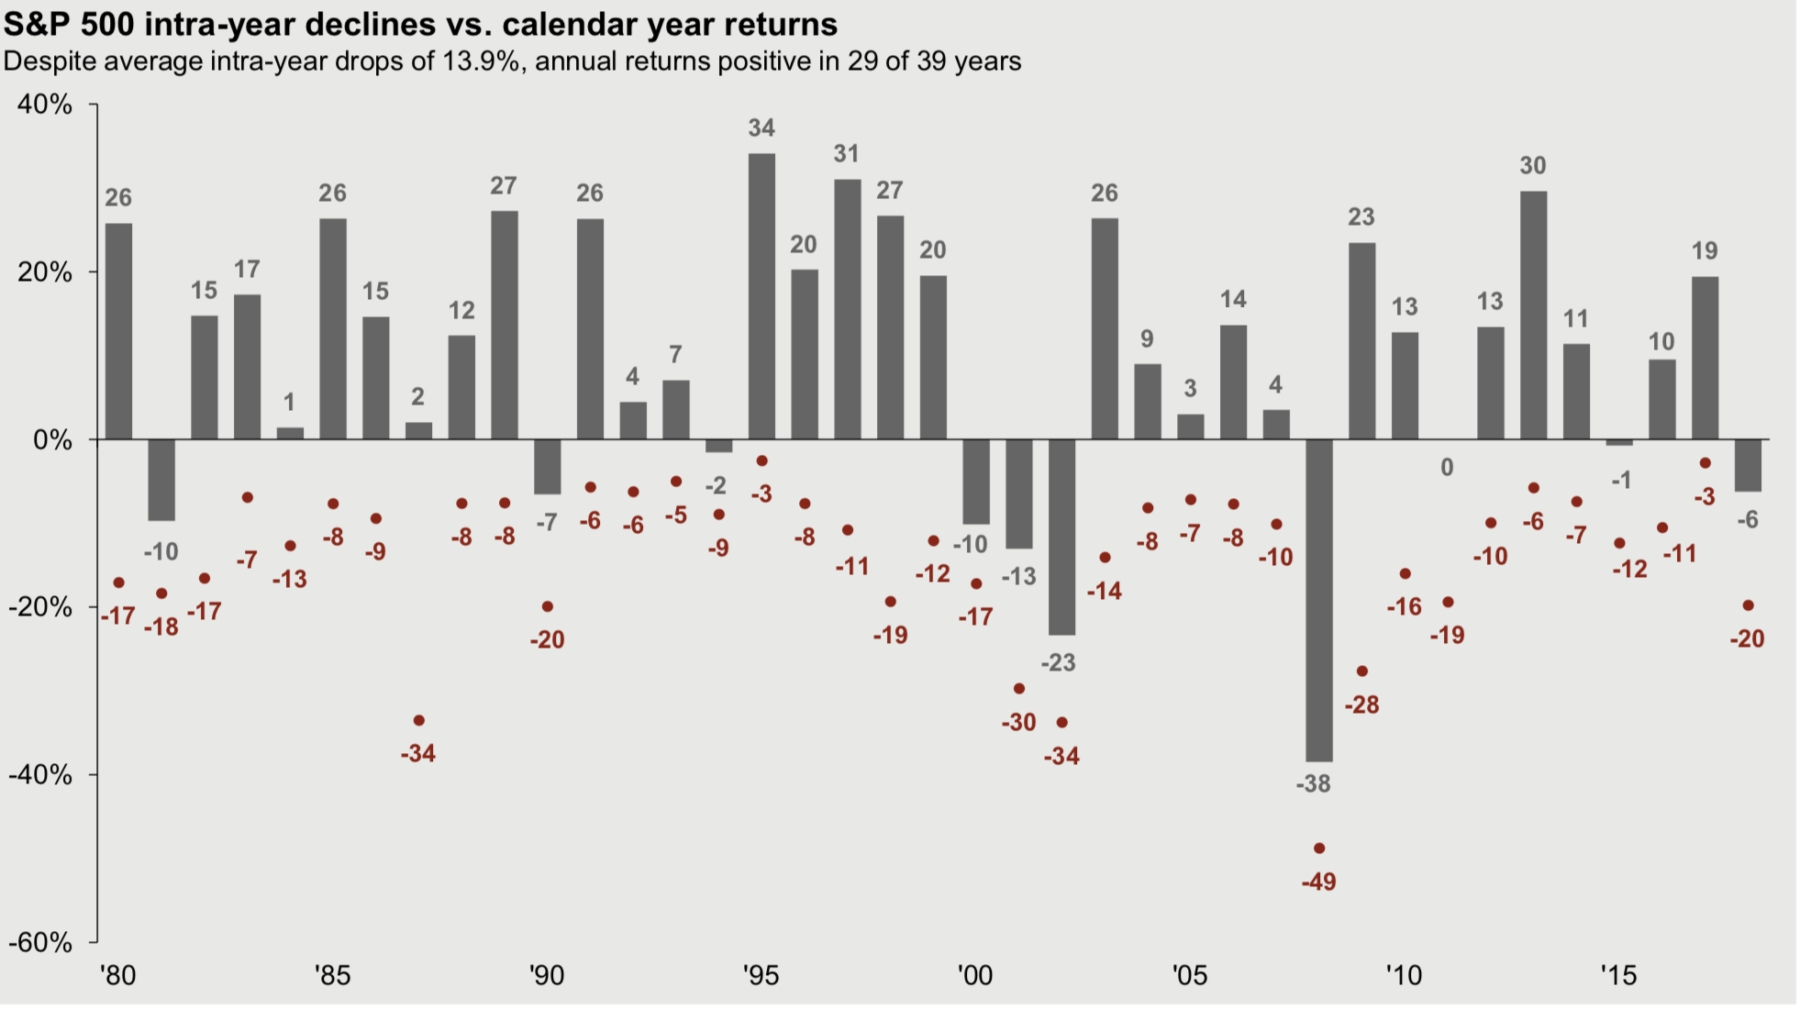 S&p 500 Intra-Year Declines Vs. Calendar Year Returns - The